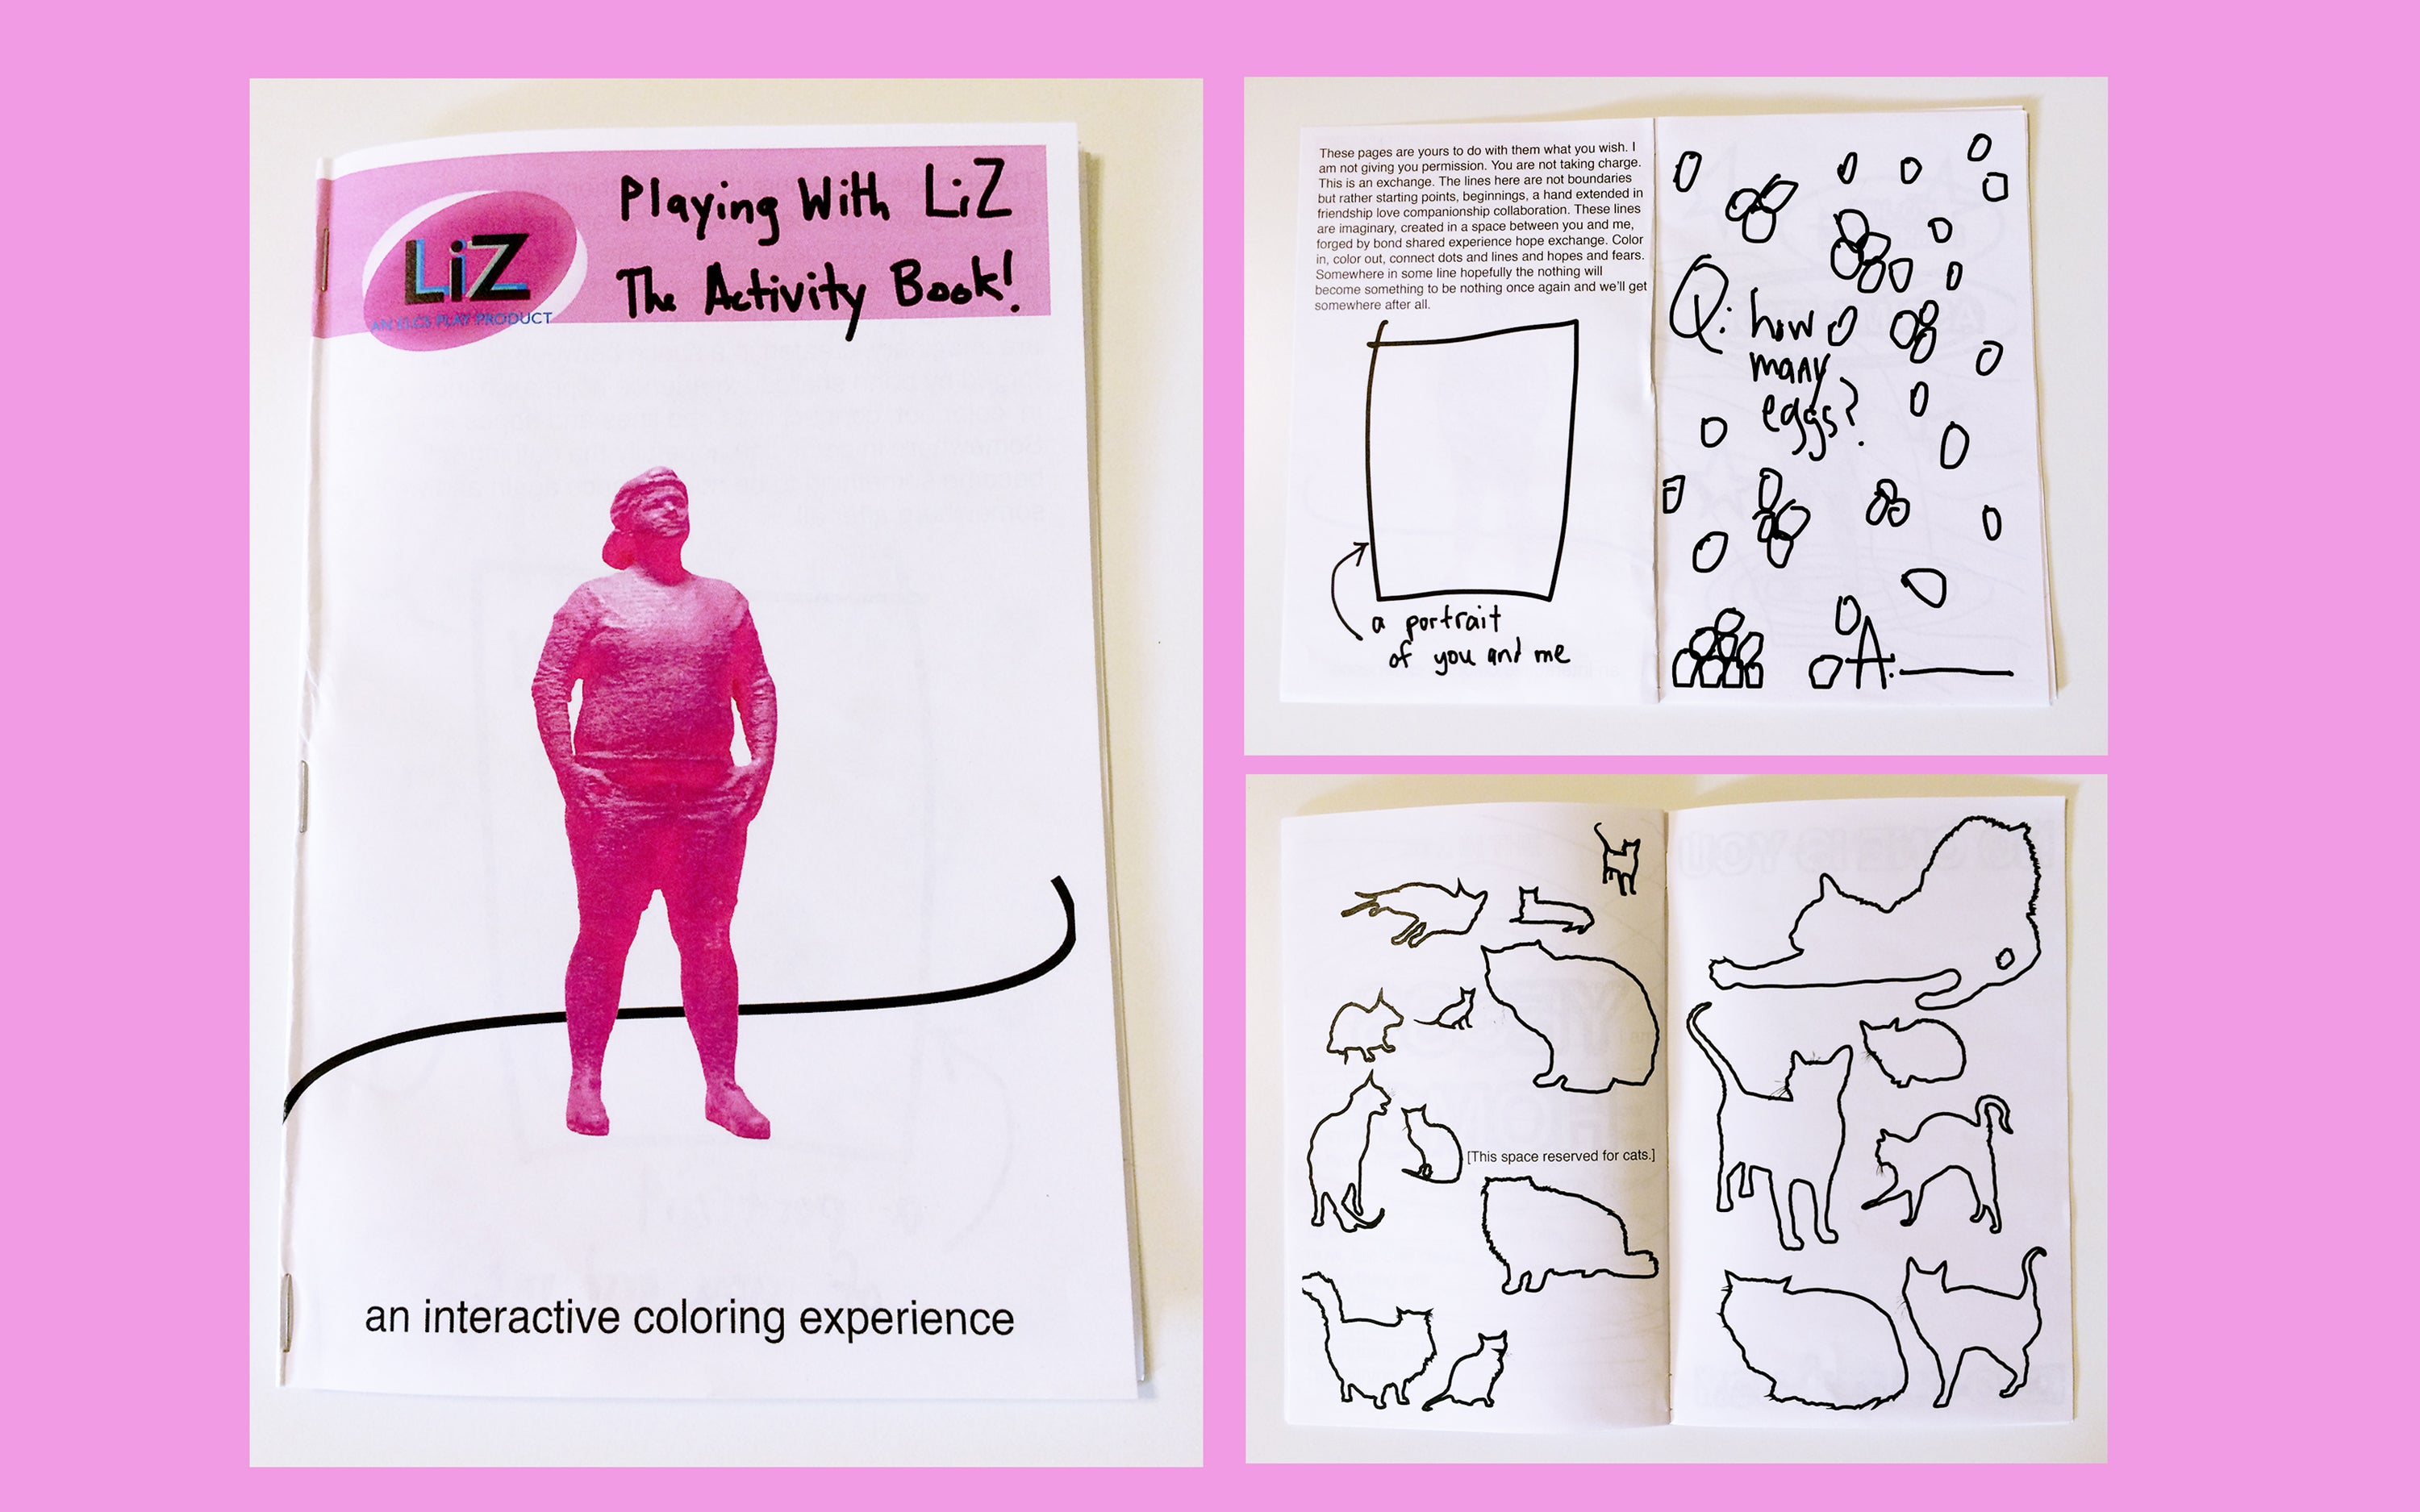 Playing with LiZ! The Activity Book